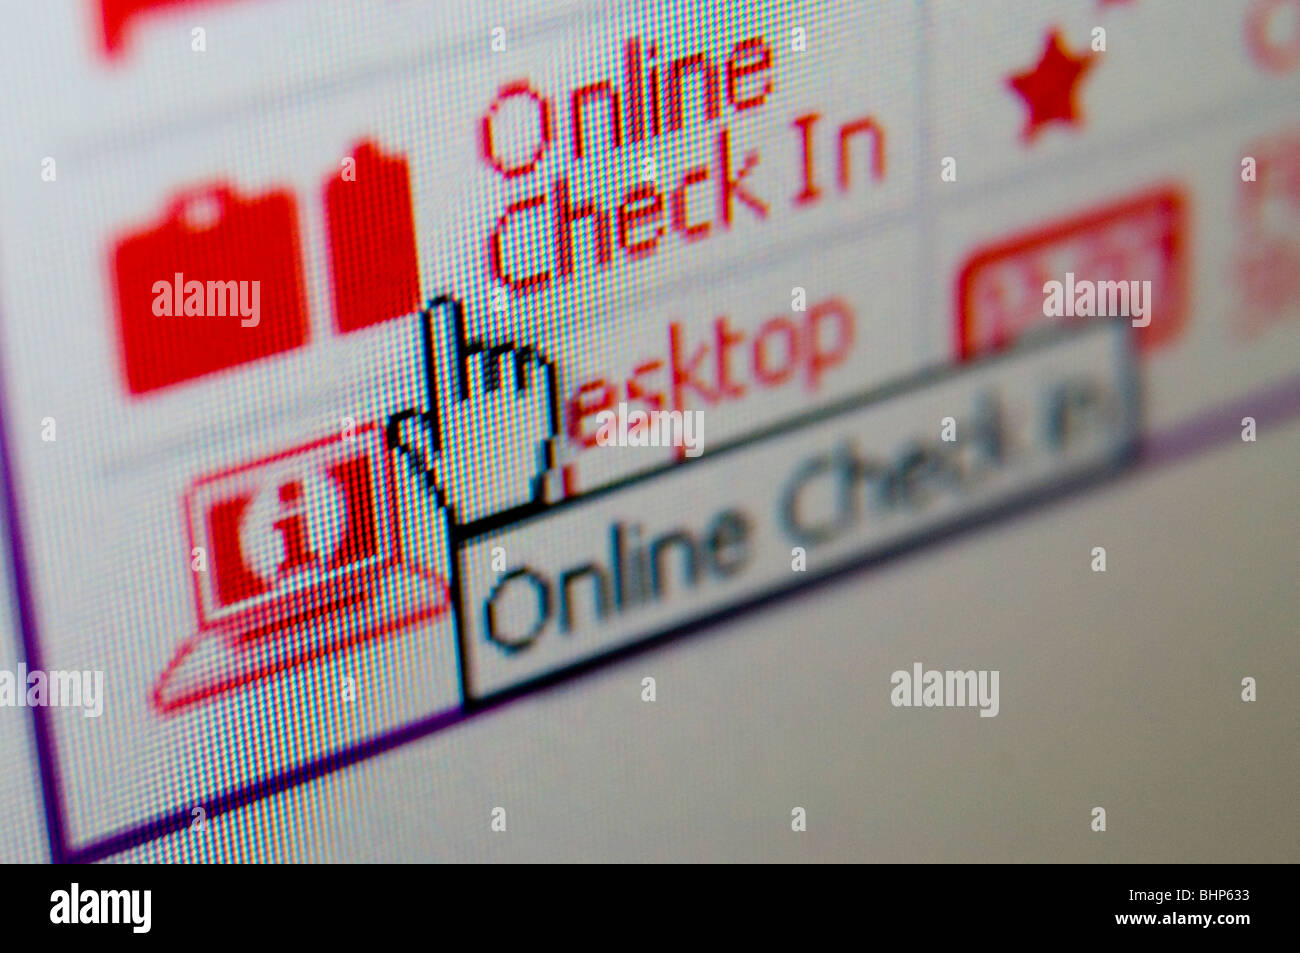 online airline check in computer screen Stock Photo: 28147255 - Alamy